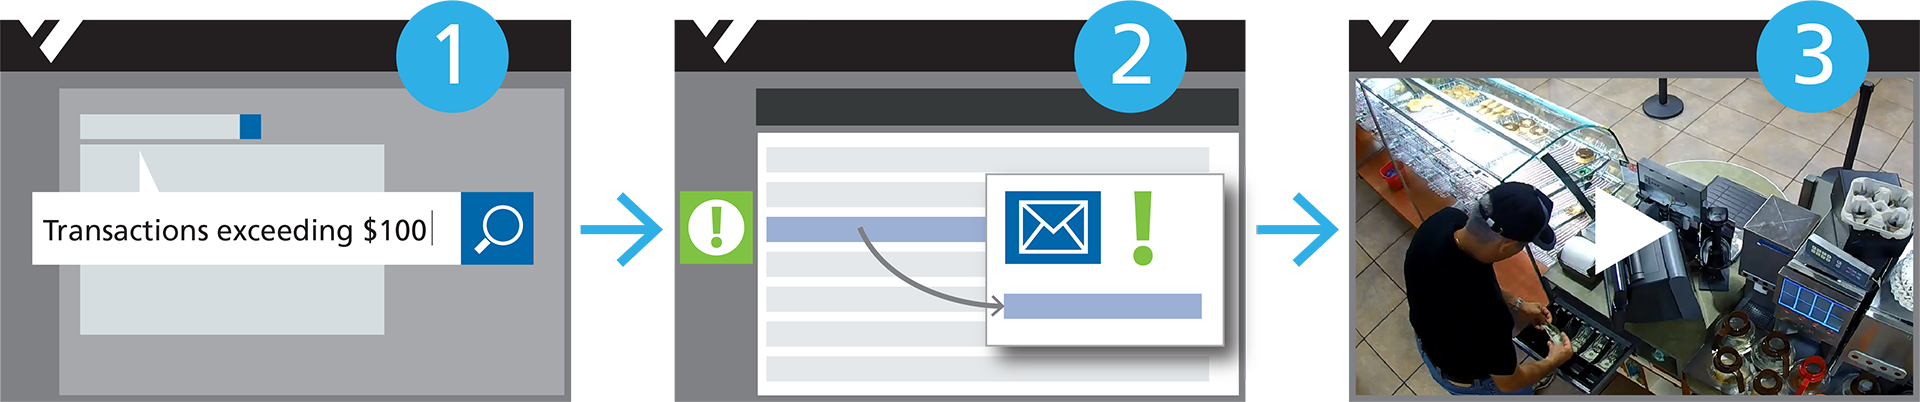 An illustration showing how Searchlight's business rules tool lets users input the transaction type they're looking for, receive an alert, and find video evidence.